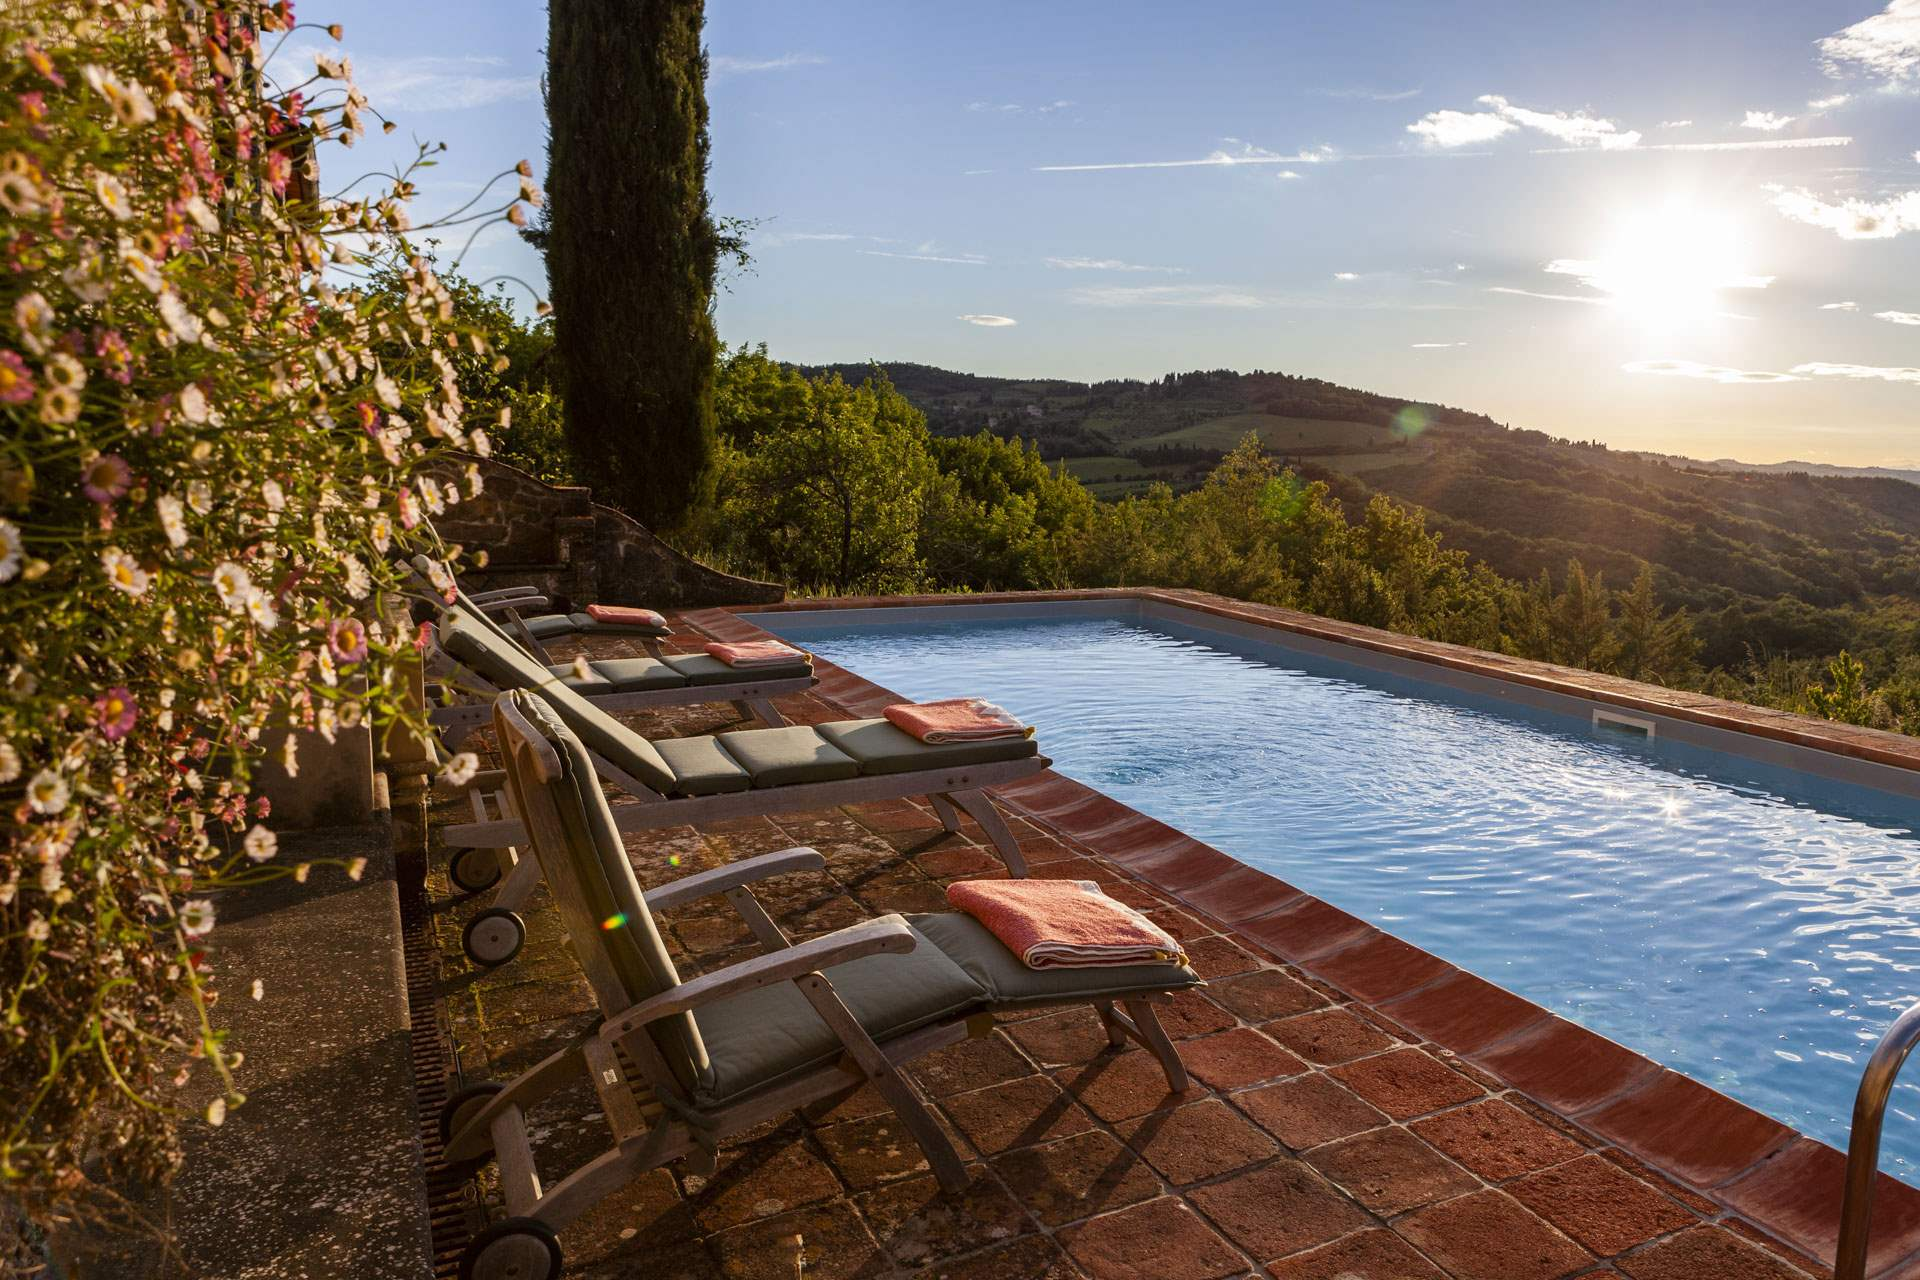 Villa Del Vino, 5 bedroom villa in Chianti & Countryside, Tuscany Photo #1